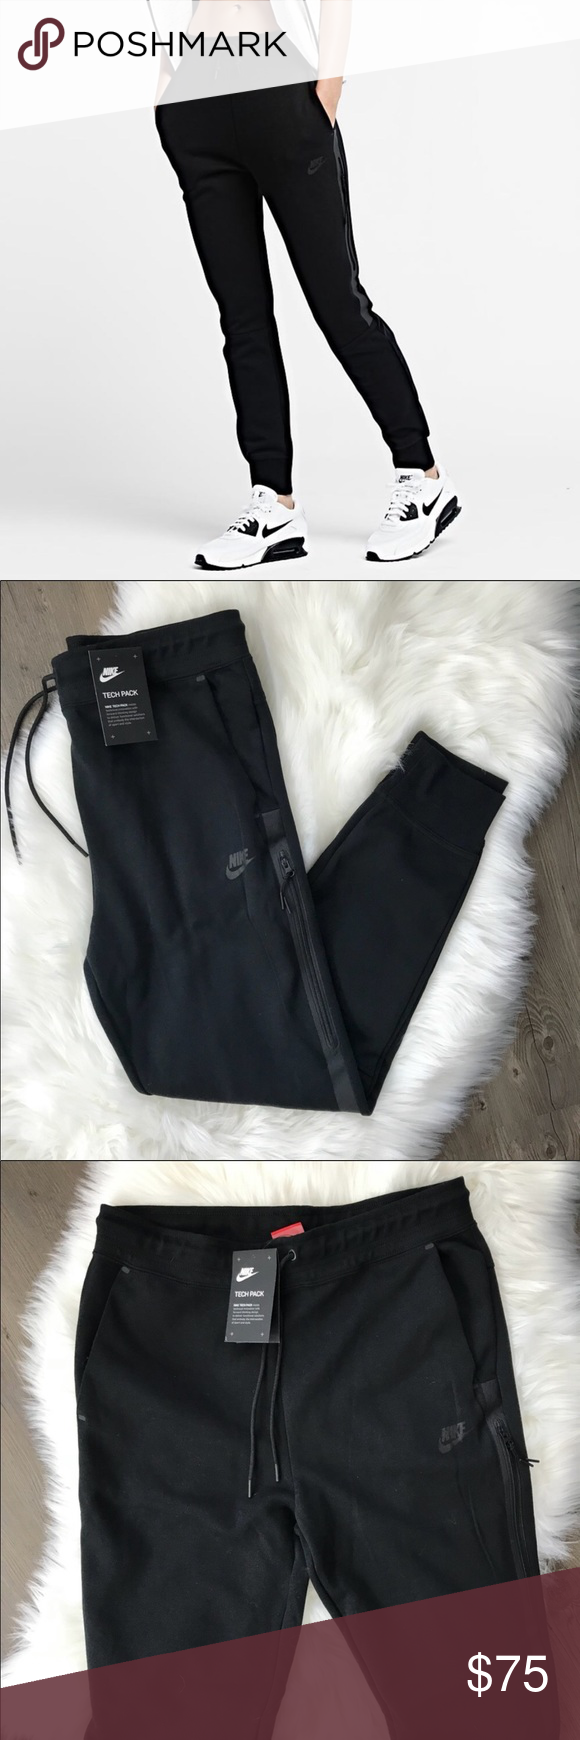 2d8a0f8a7dcf NWT Nike Tech Fleece Joggers Black • brand new with tags • size xs • no